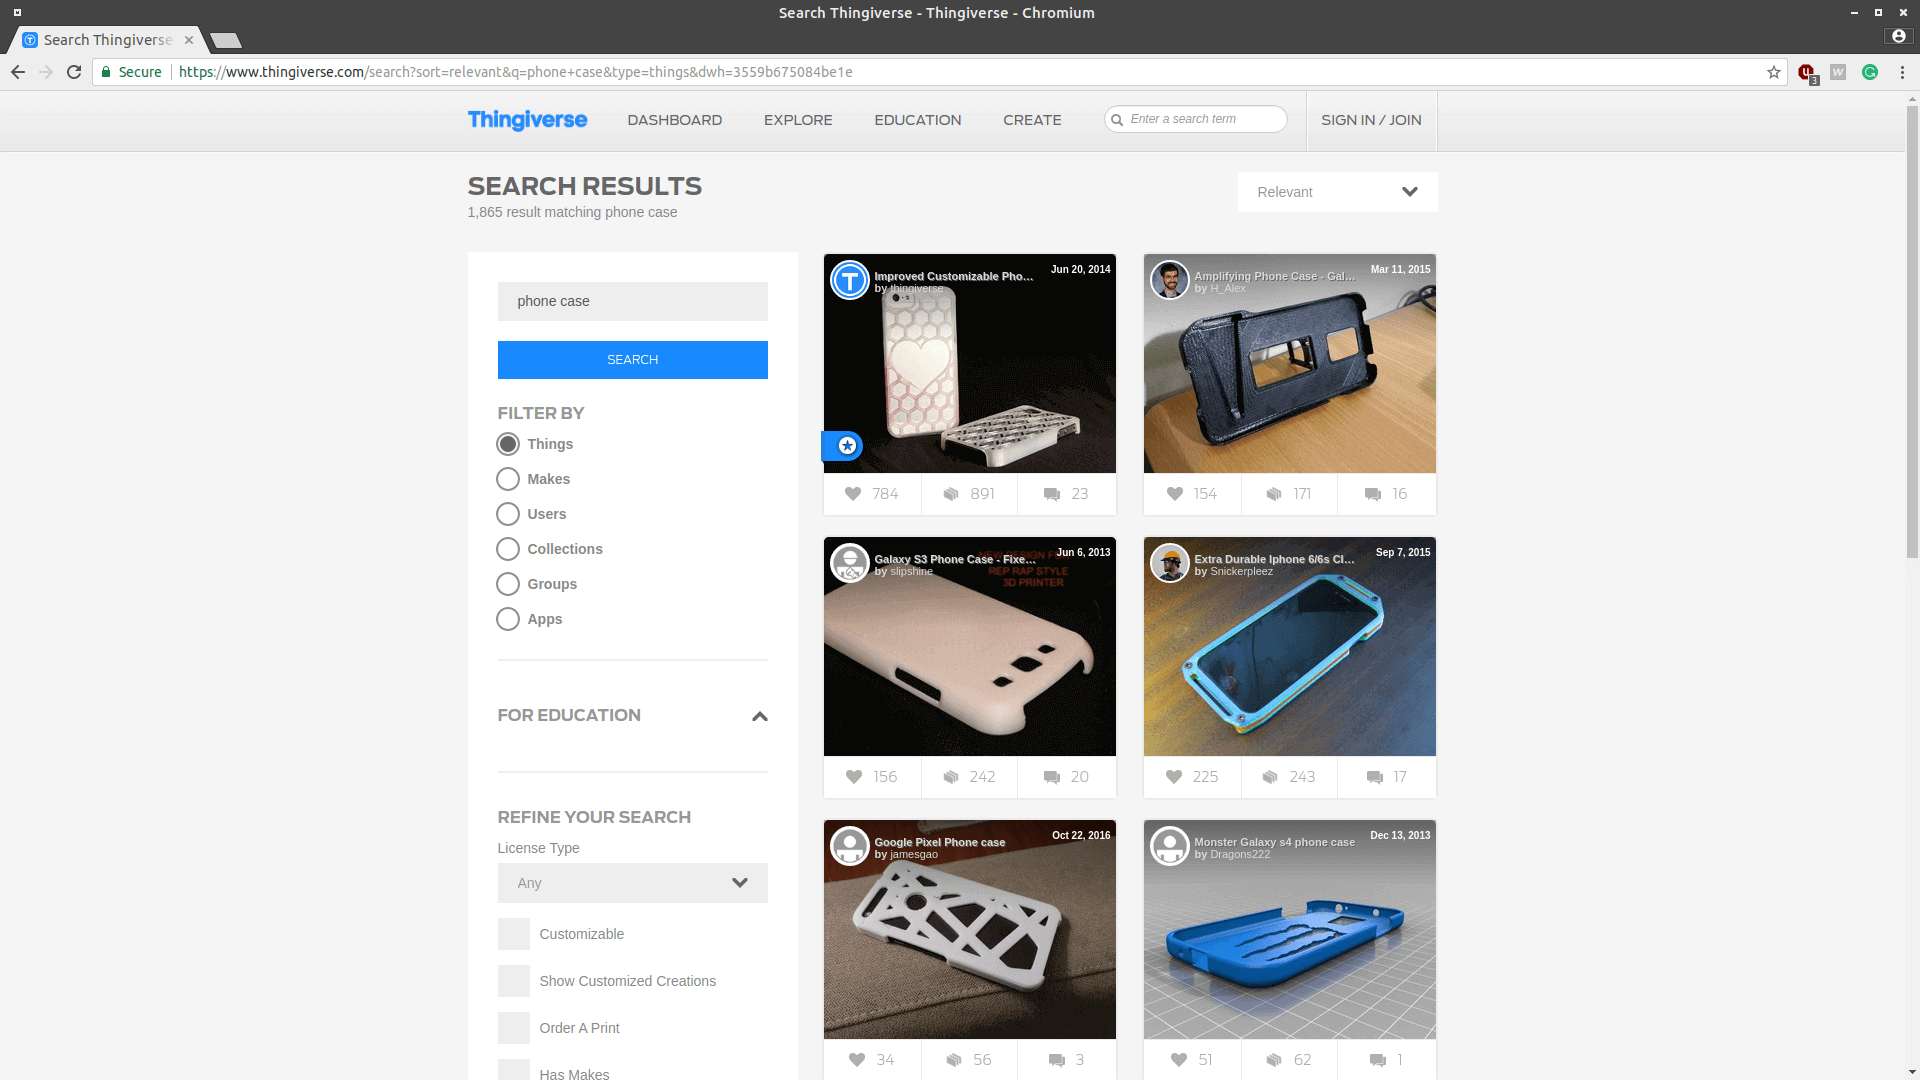 Thingiverse is the biggest repository of STL files